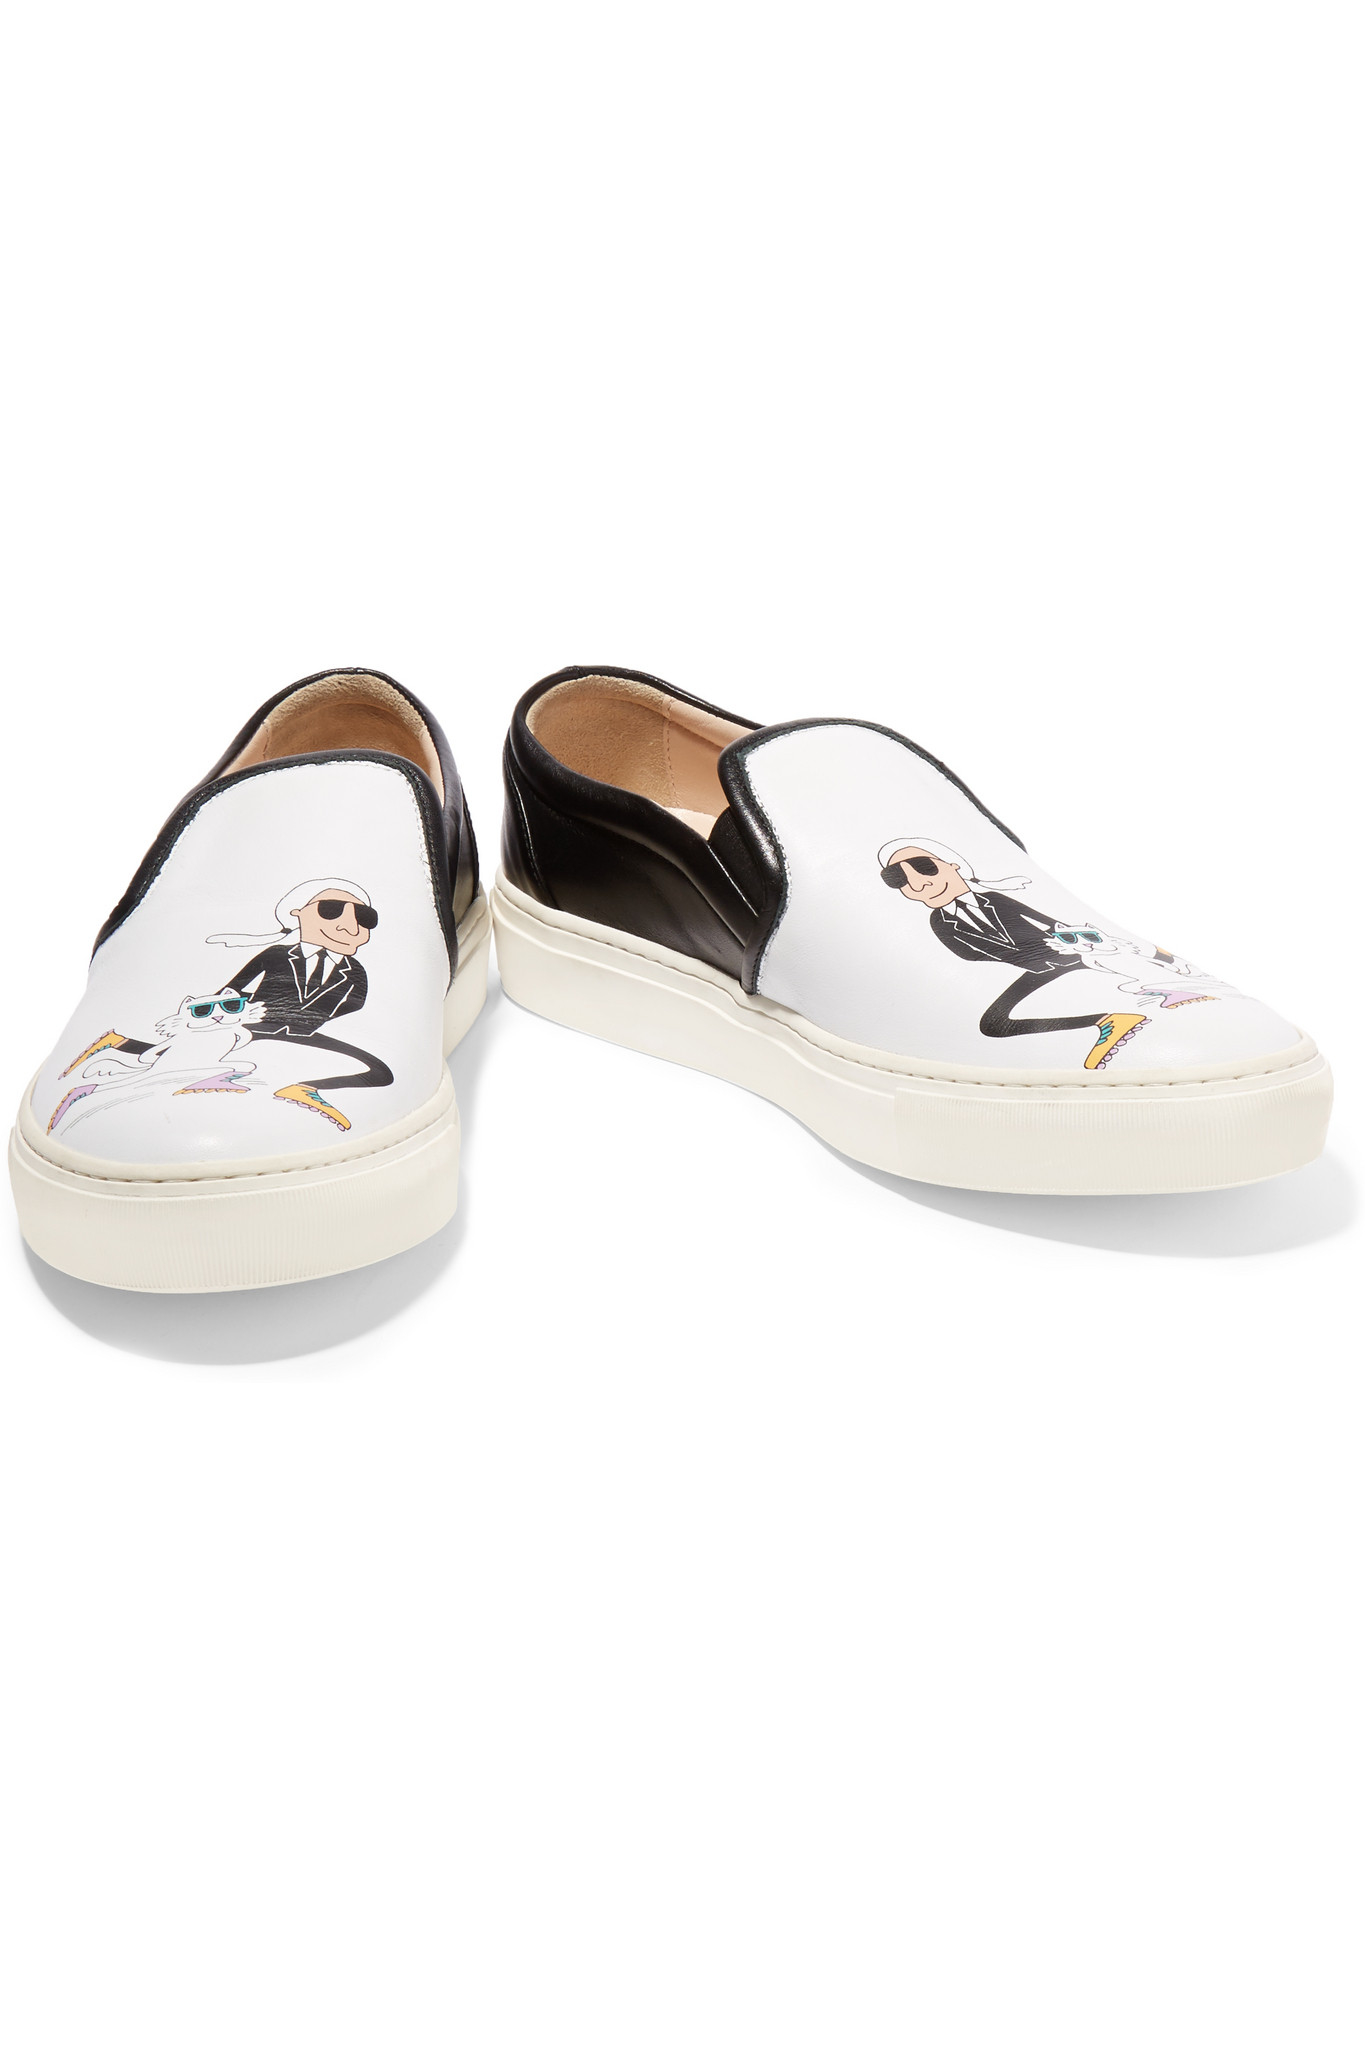 Karl Lagerfeld Printed Two-tone Leather Slip-on Sneakers in White